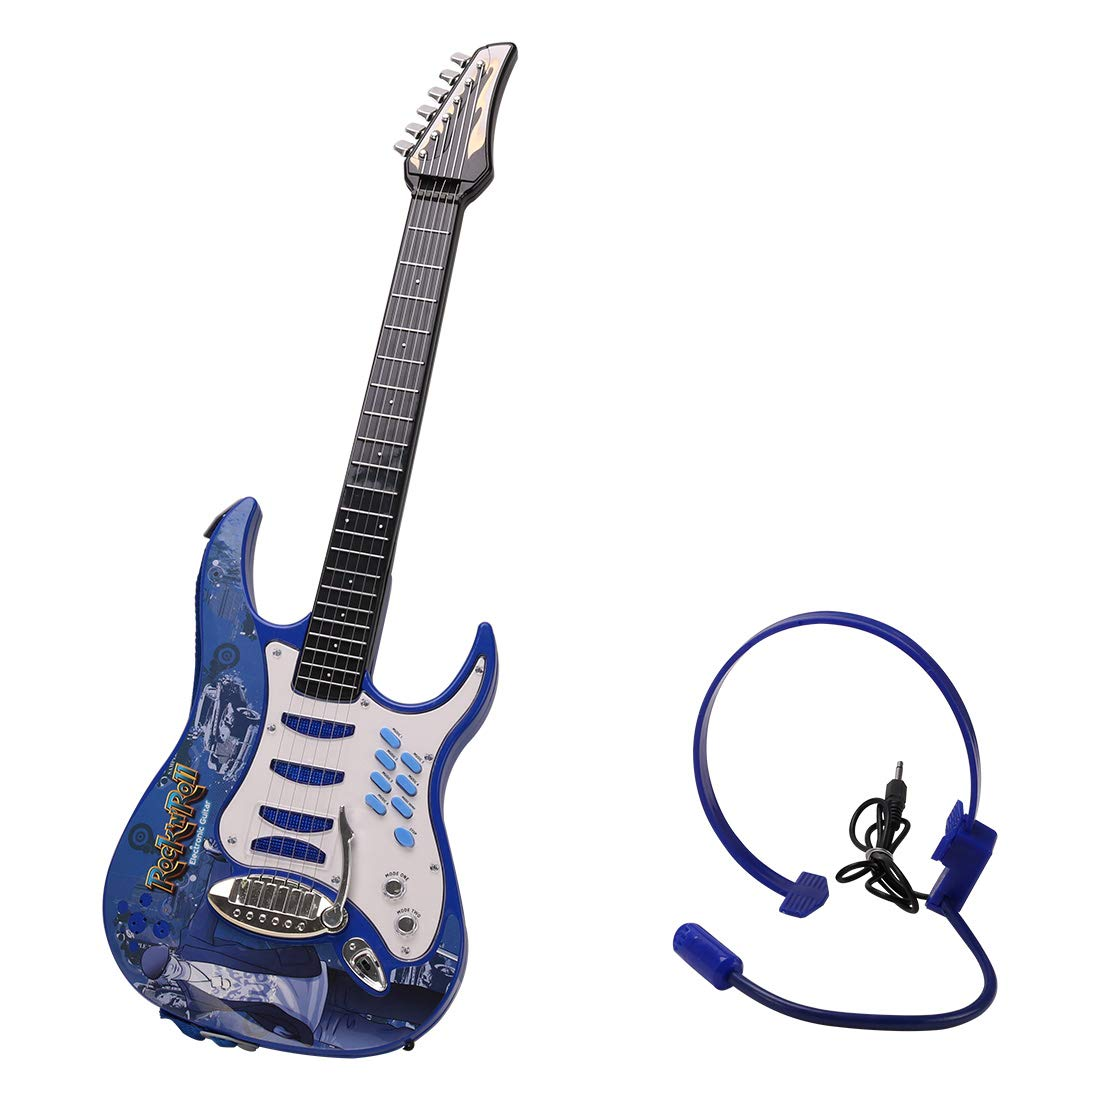 HMANE Electric Guitar Toys Musical Instrument Toys Early Educational Toy with Earphone for Boys Girls Children - (Blue)